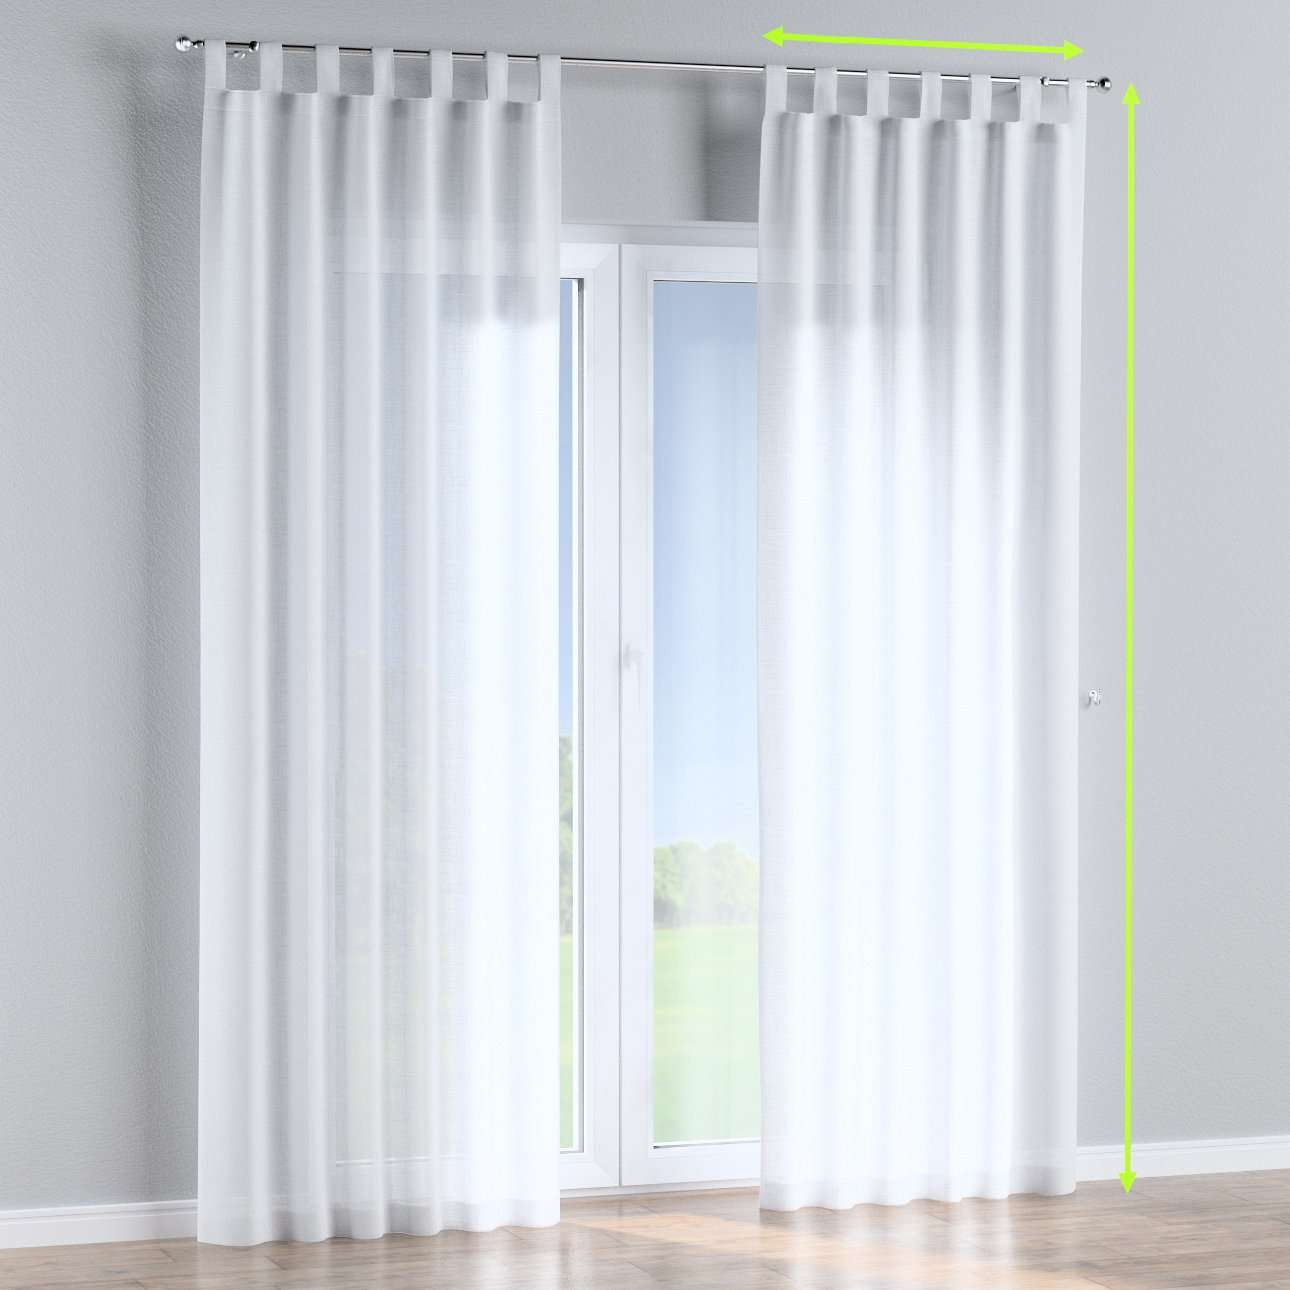 Tab top lined curtains in collection Romantica, fabric: 128-77